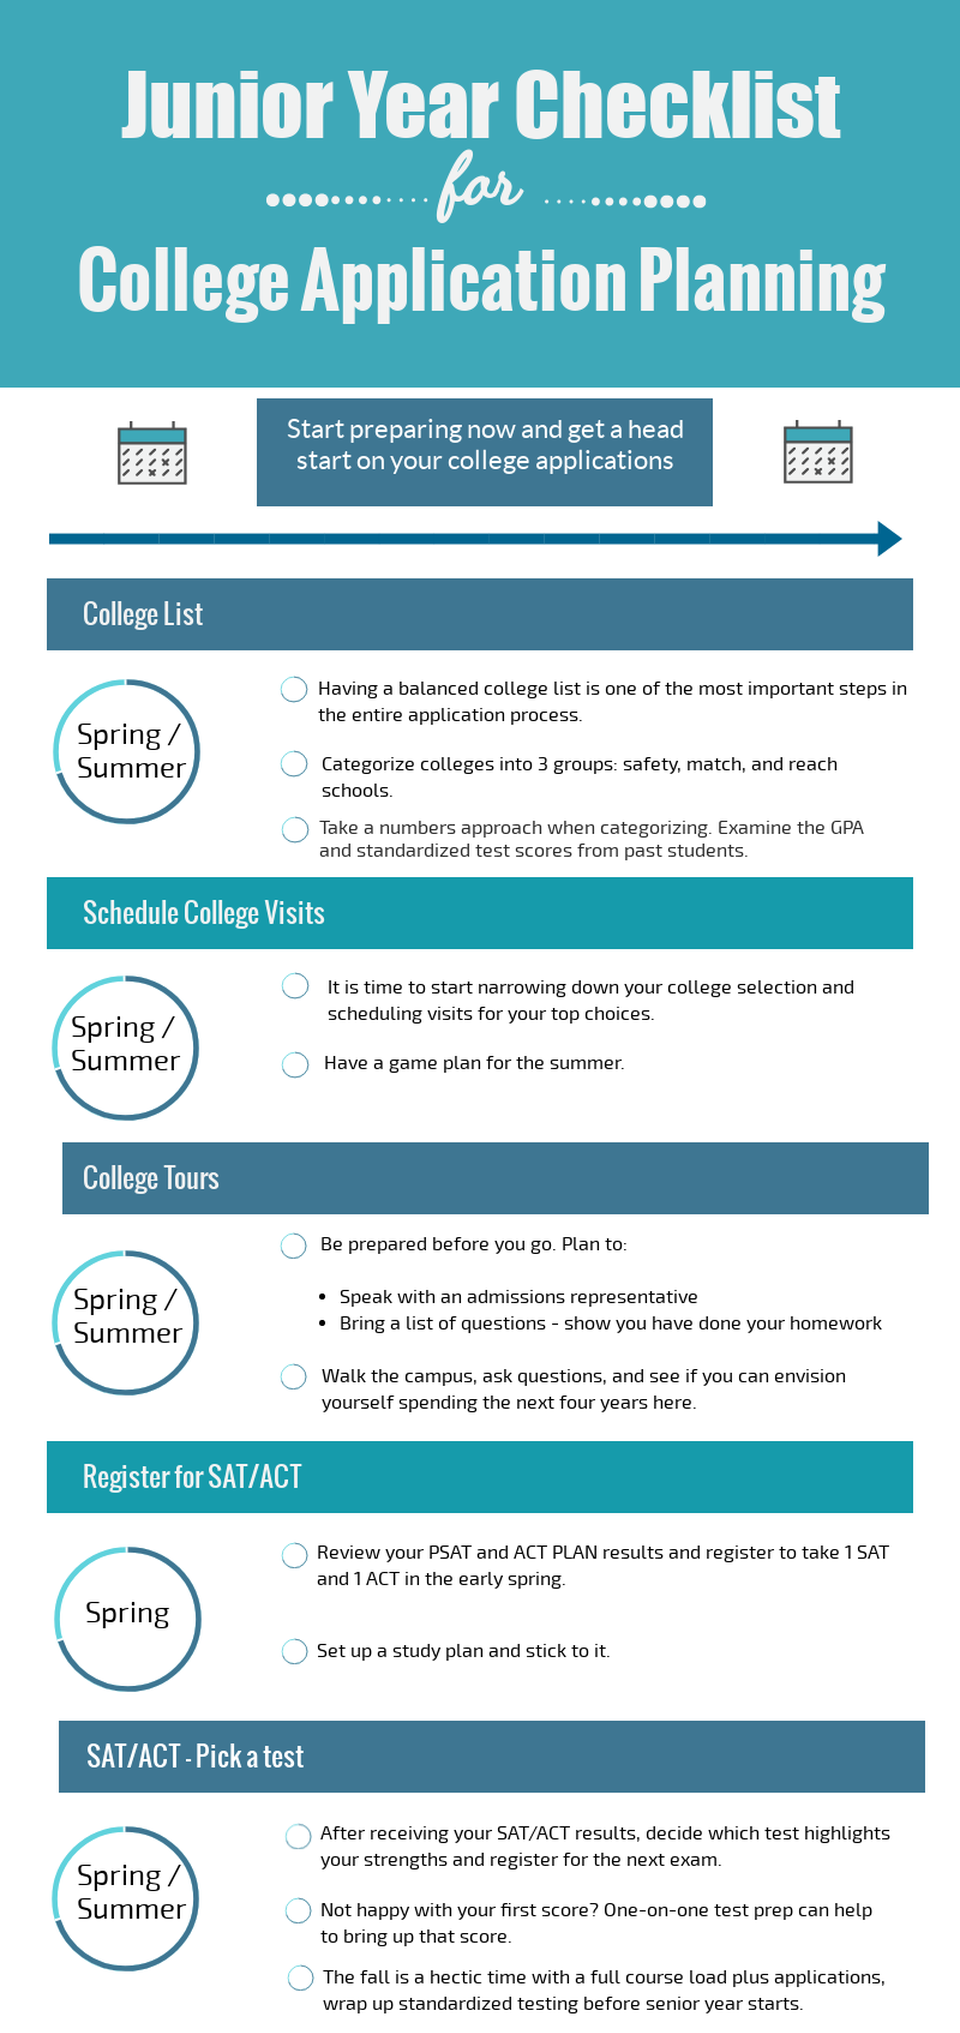 ultimate-checklist-for-future-students-1.jpg